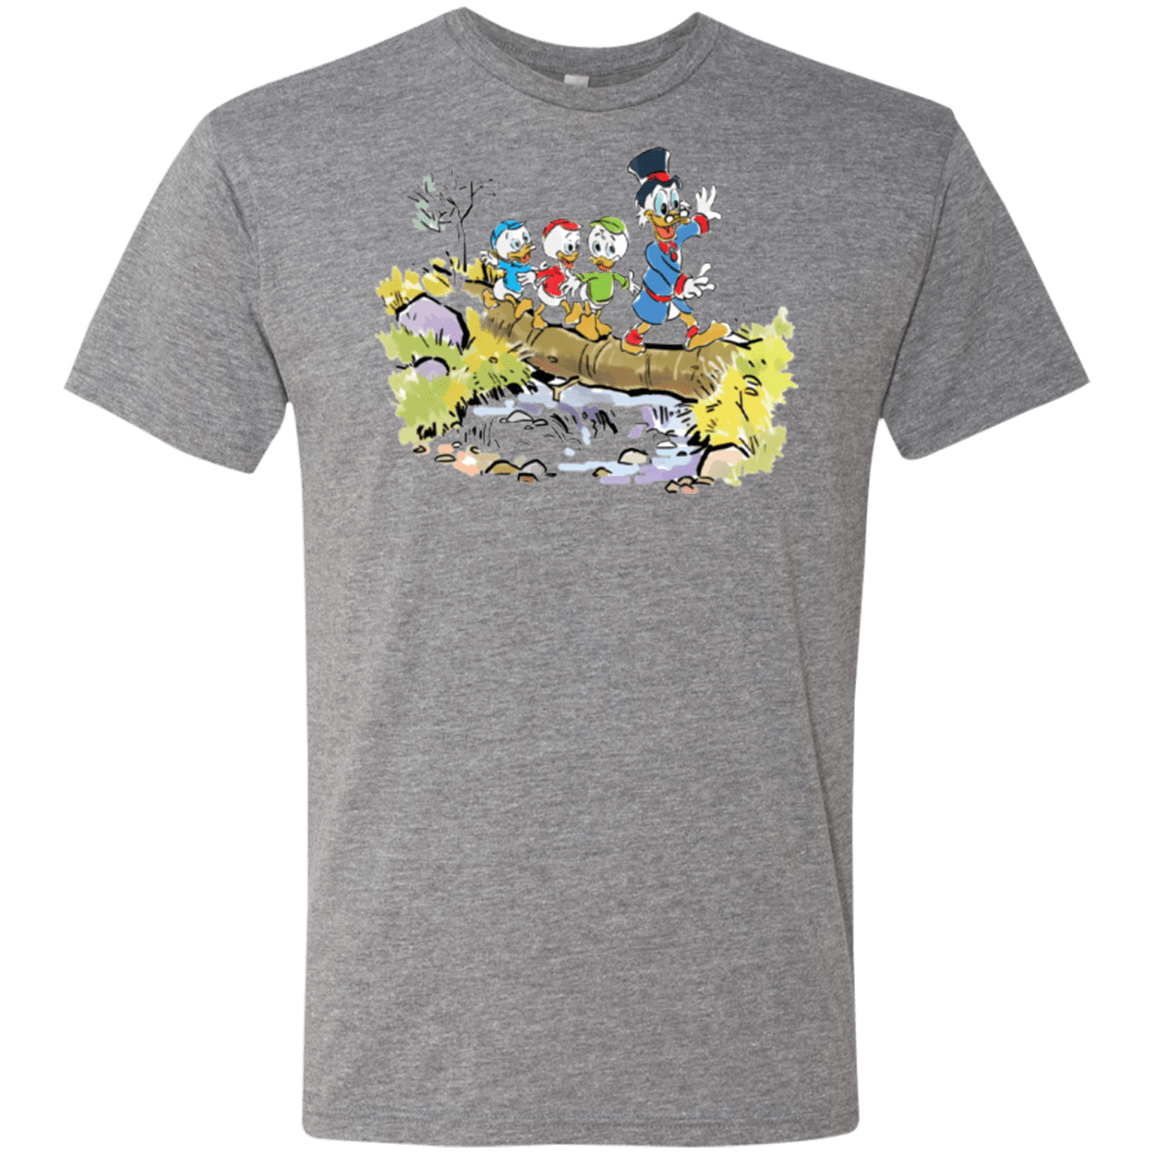 T-Shirts Premium Heather / Small Looking for Adventure Men's Triblend T-Shirt